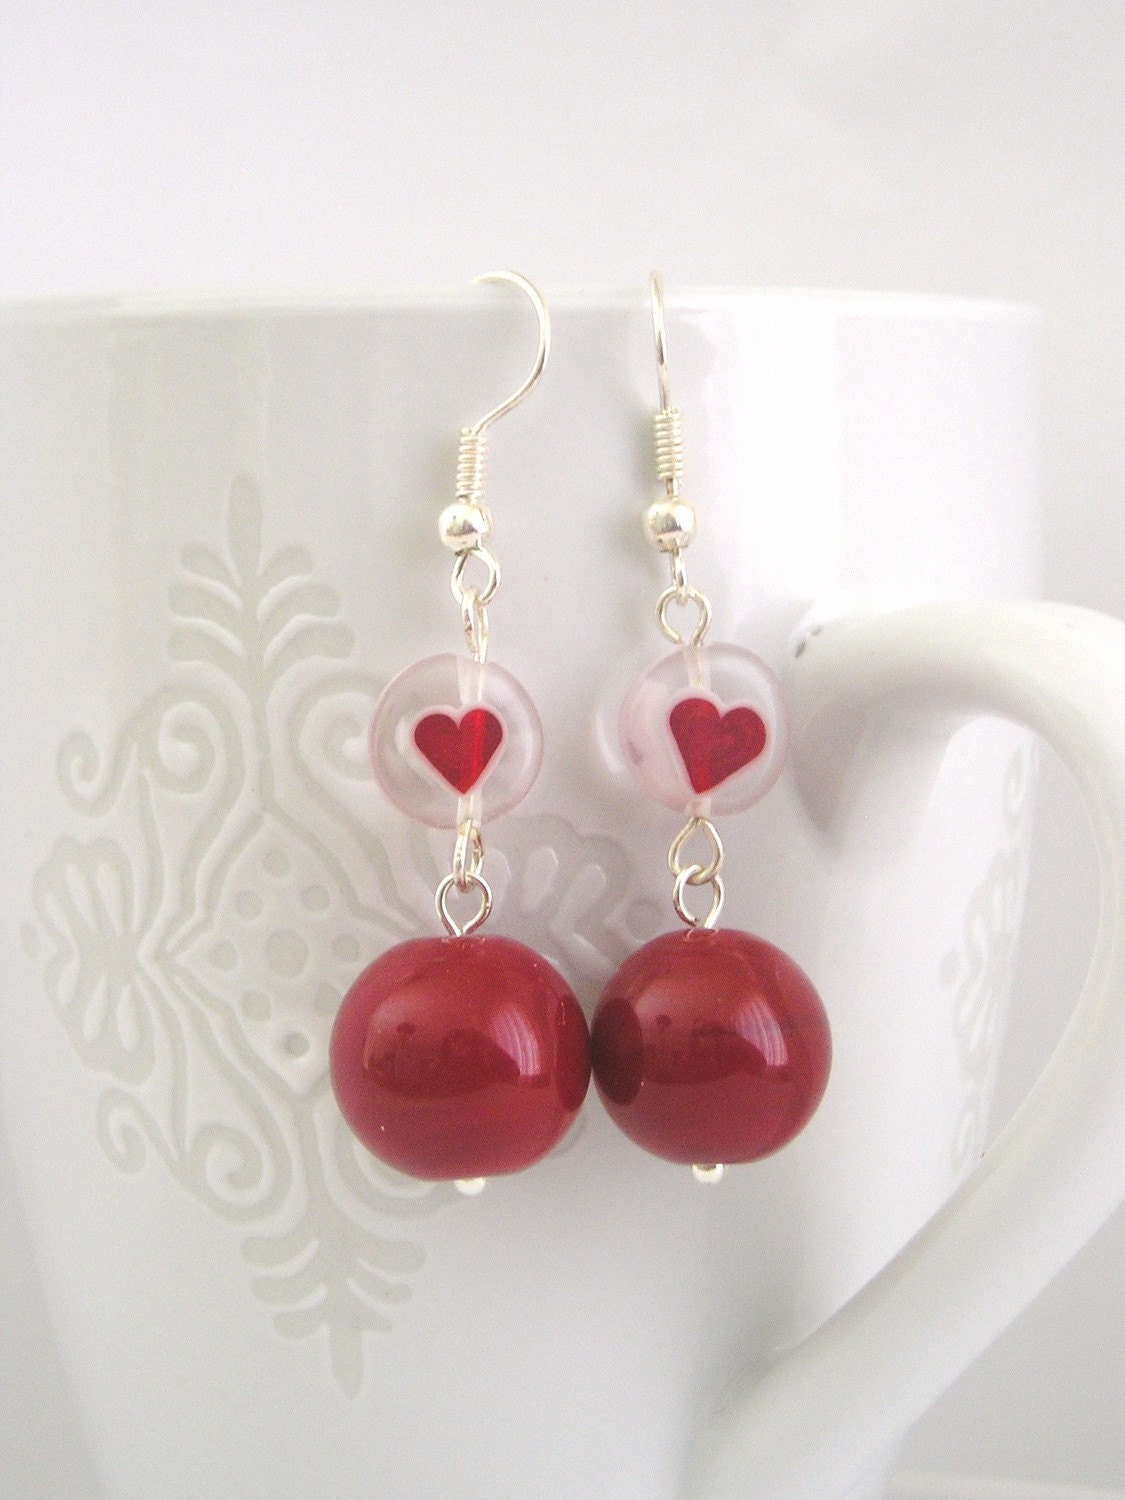 Red lampwork beads and red heart murano glass beads by Lbtoyos from etsy.com